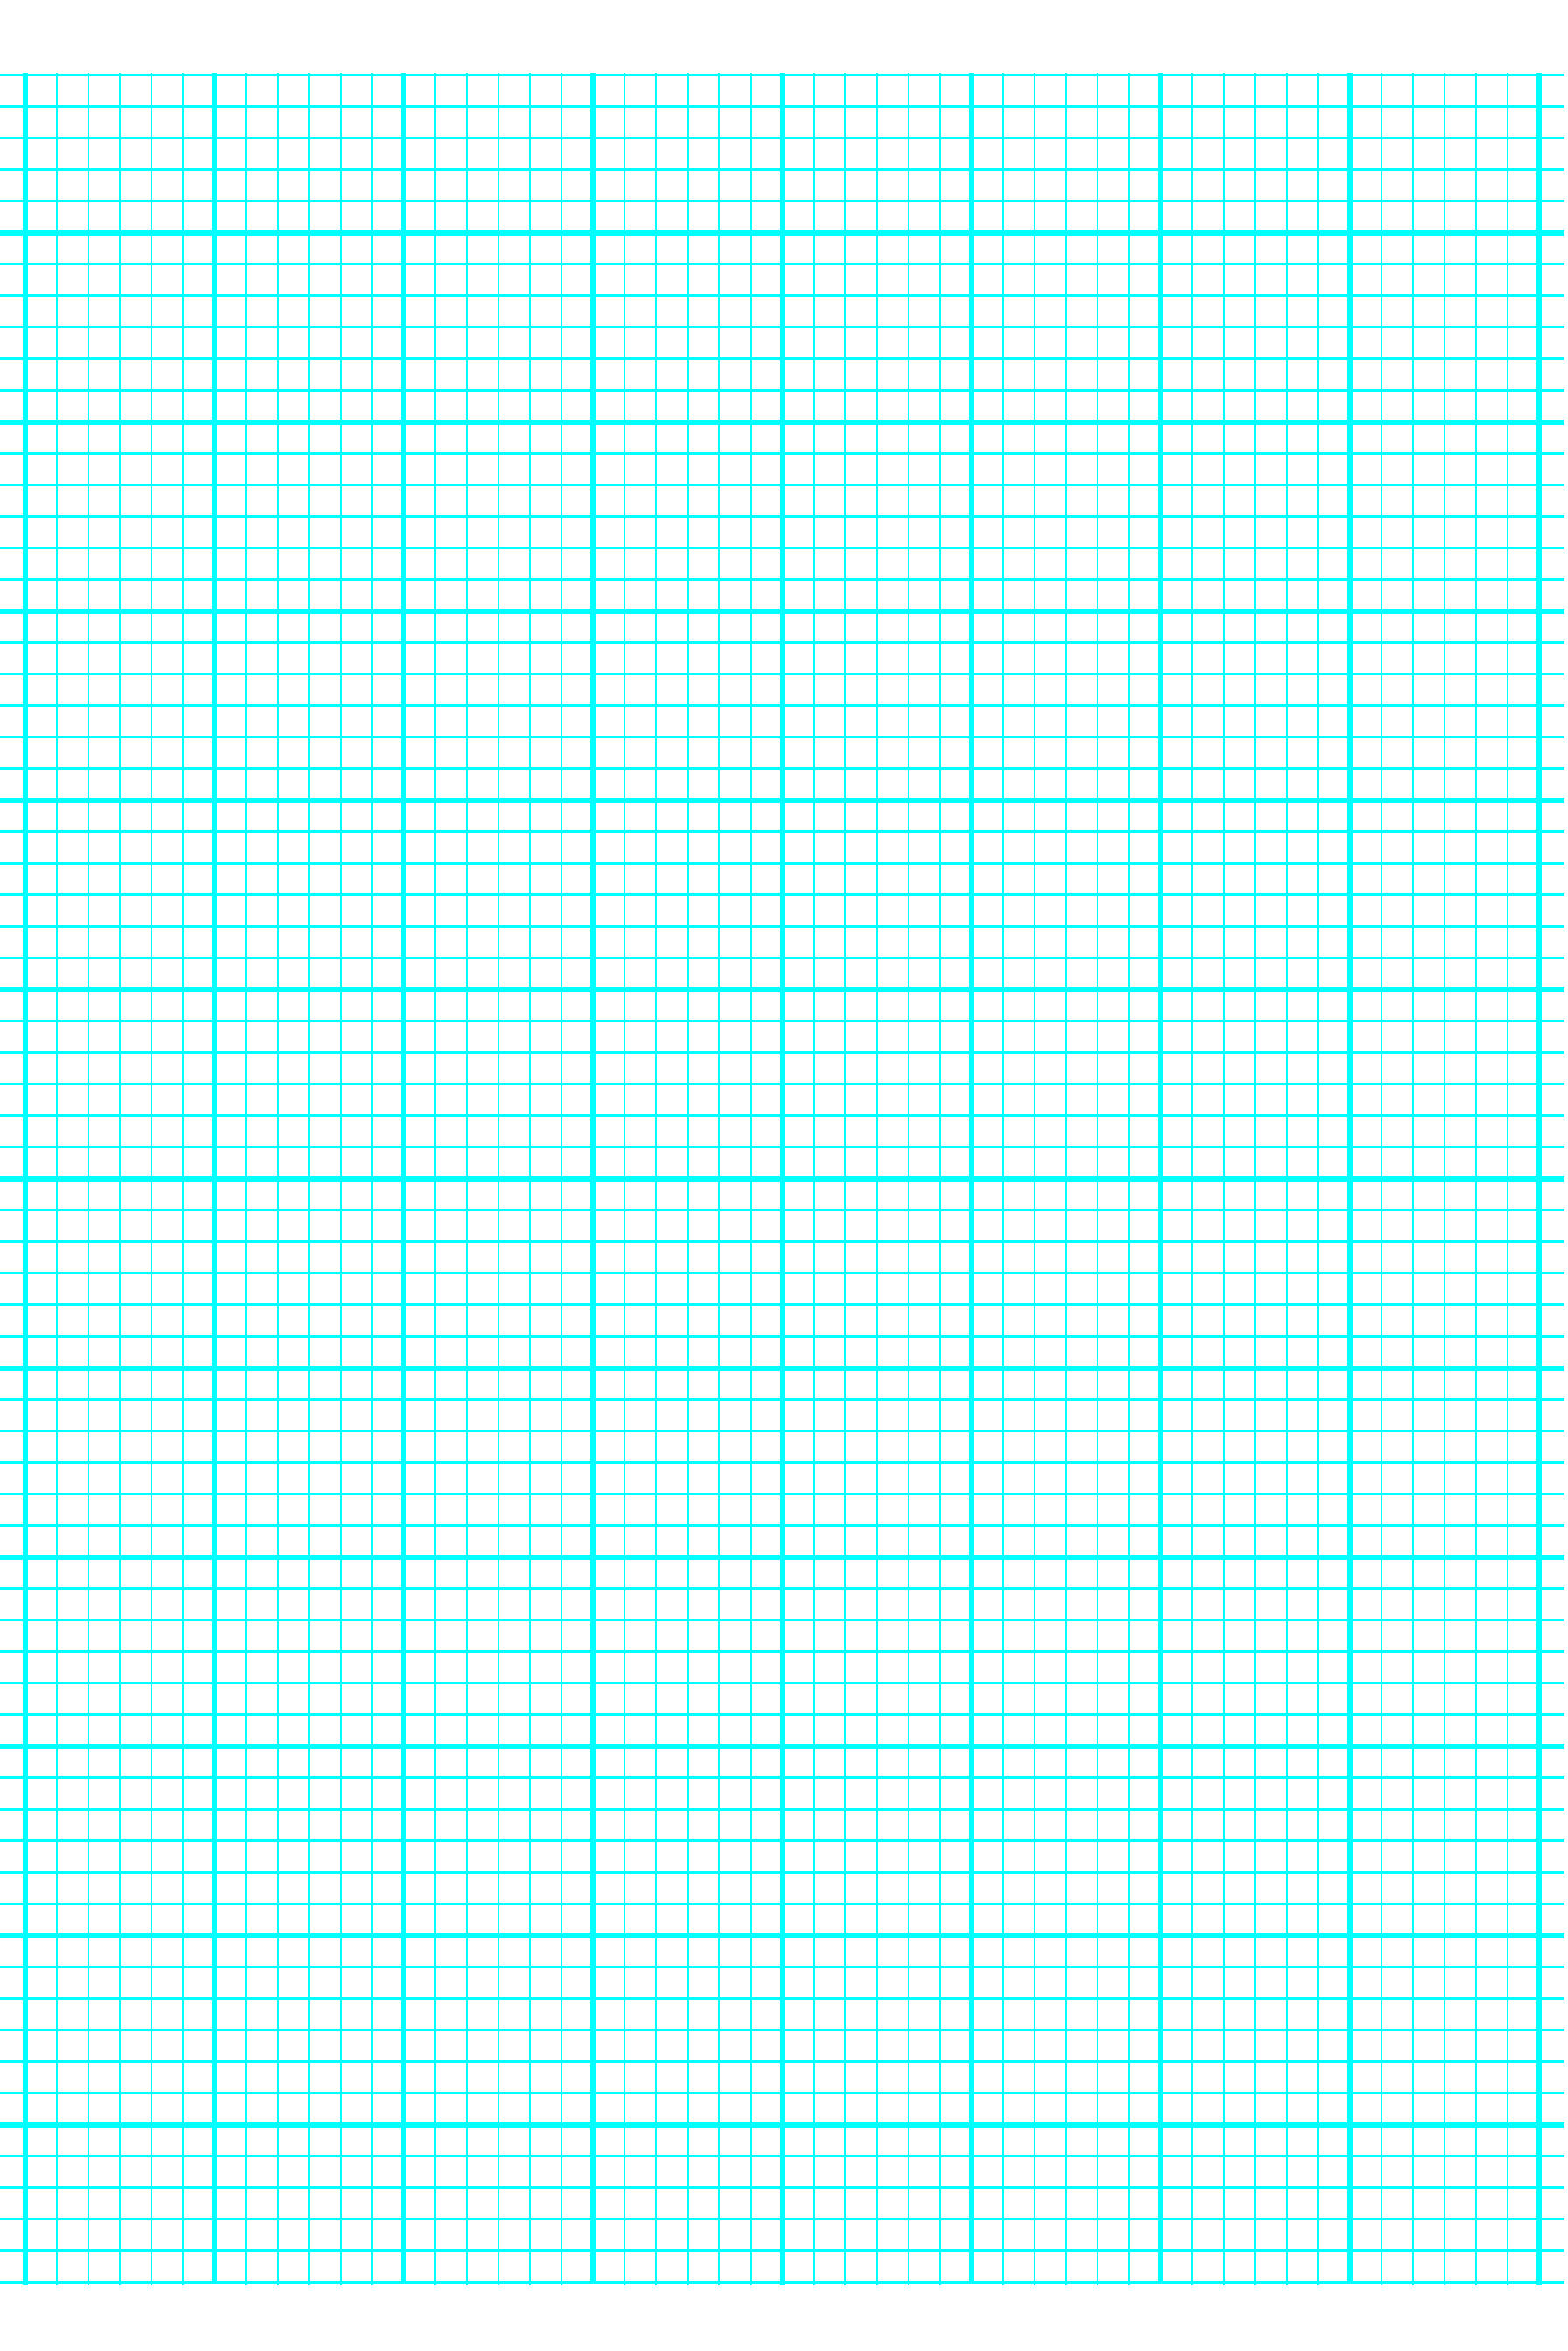 6 Lines Per Inch Graph Paper On A4 Sized Paper Heavy Free Download